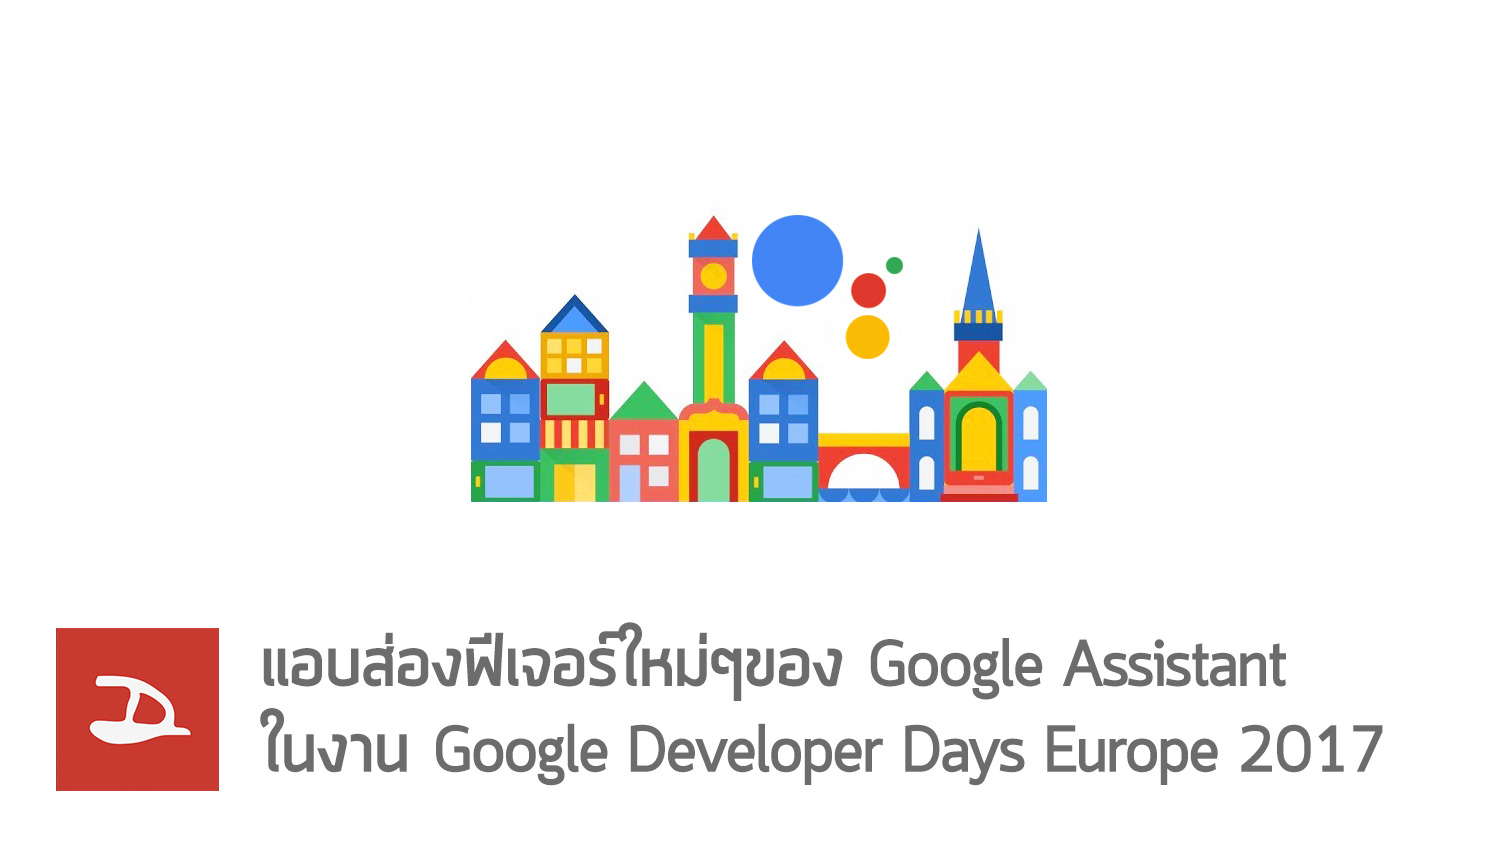 new_google_assistant_feature_in_gdd_europe_2017-header-1.jpg